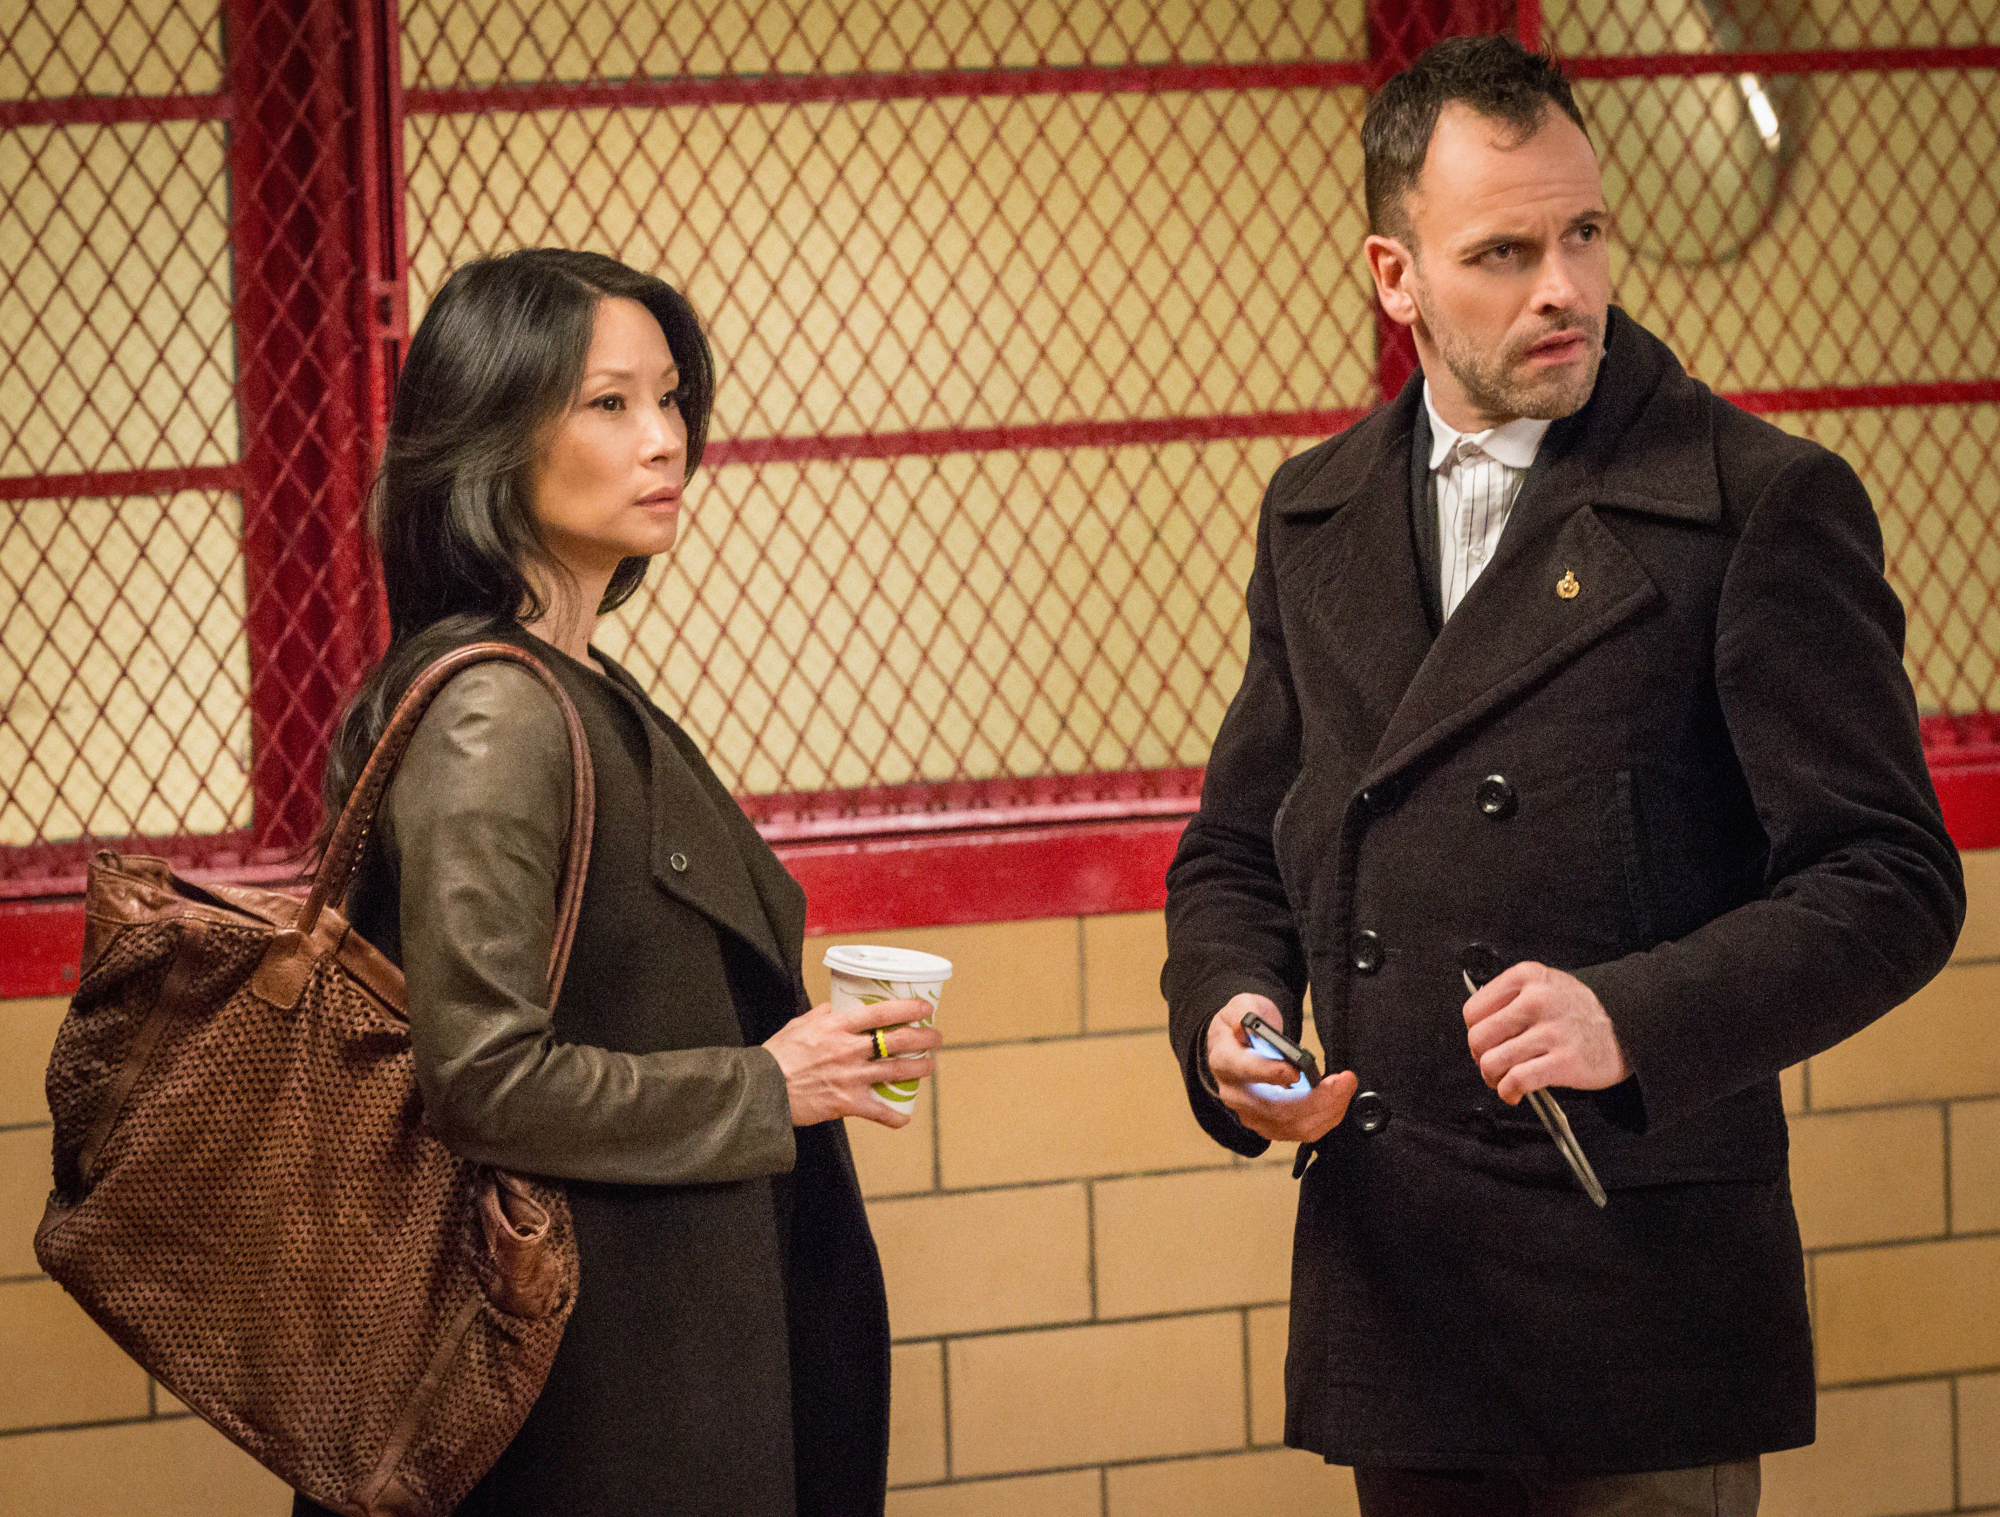 Season 2 Episode 17 - Elementary